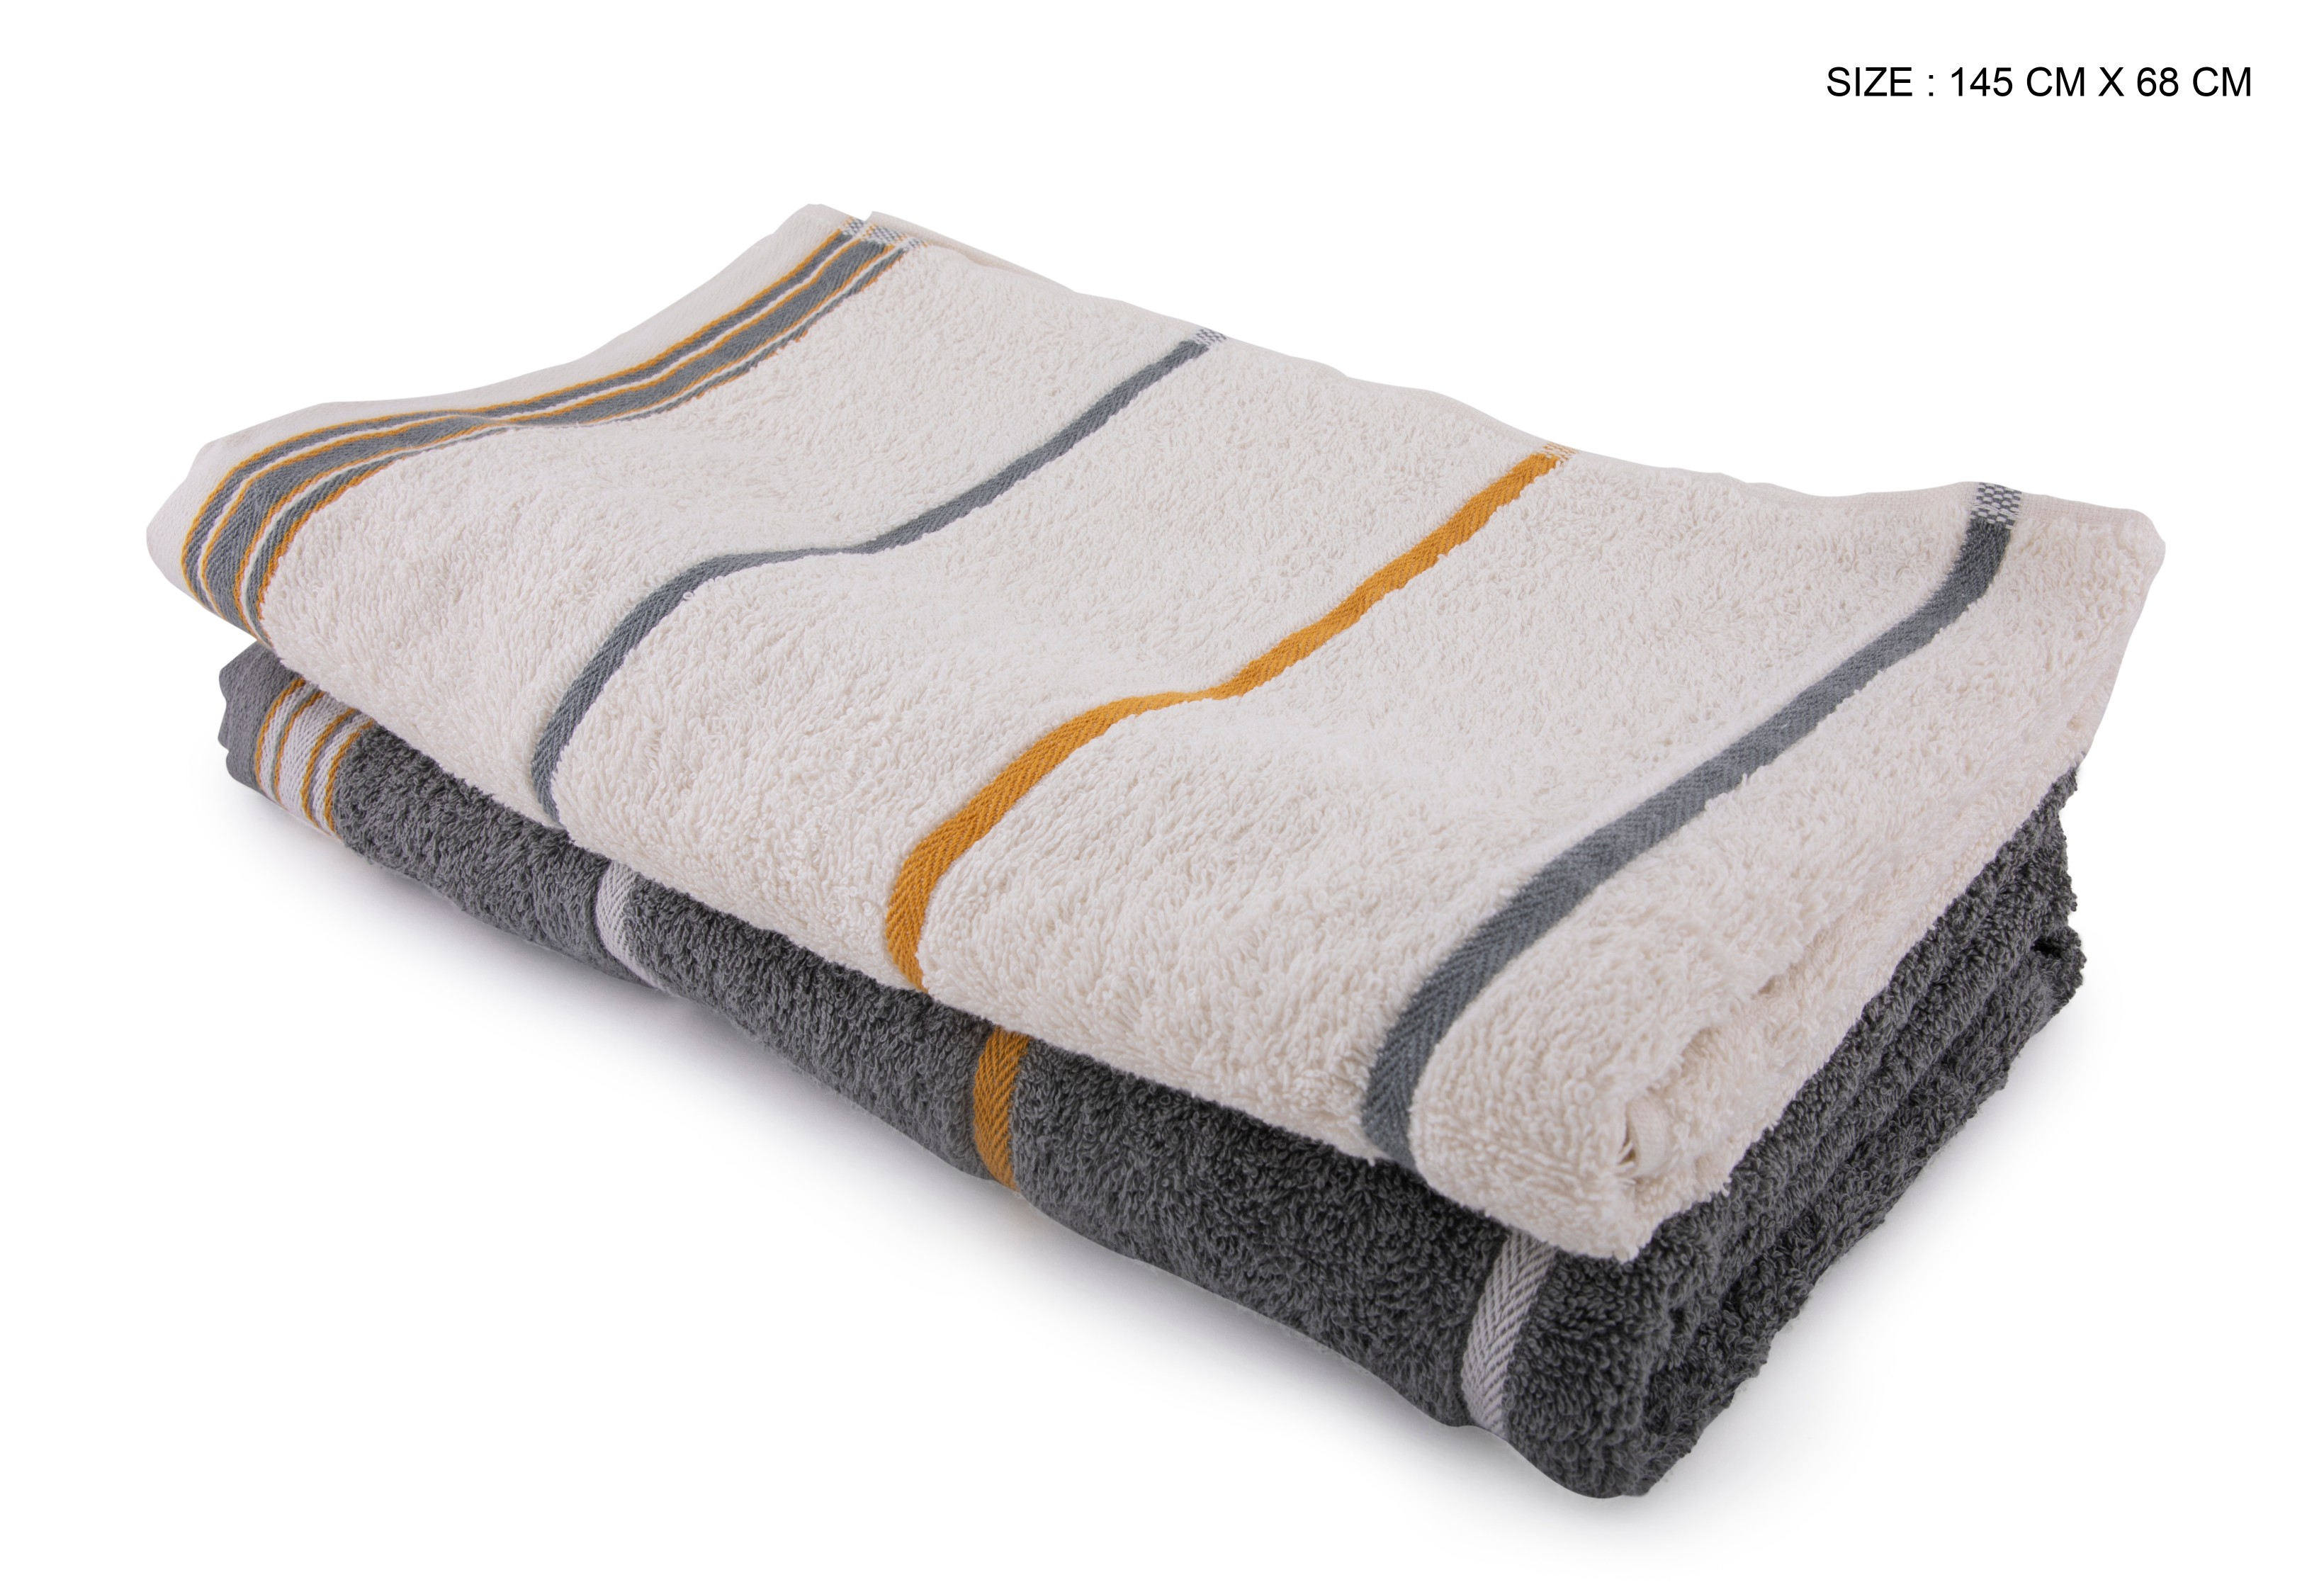 Emilia Off White Grey Set Of 2 Terry Towels Cotton Towel Sets in Off White Grey Colour by HomeTown